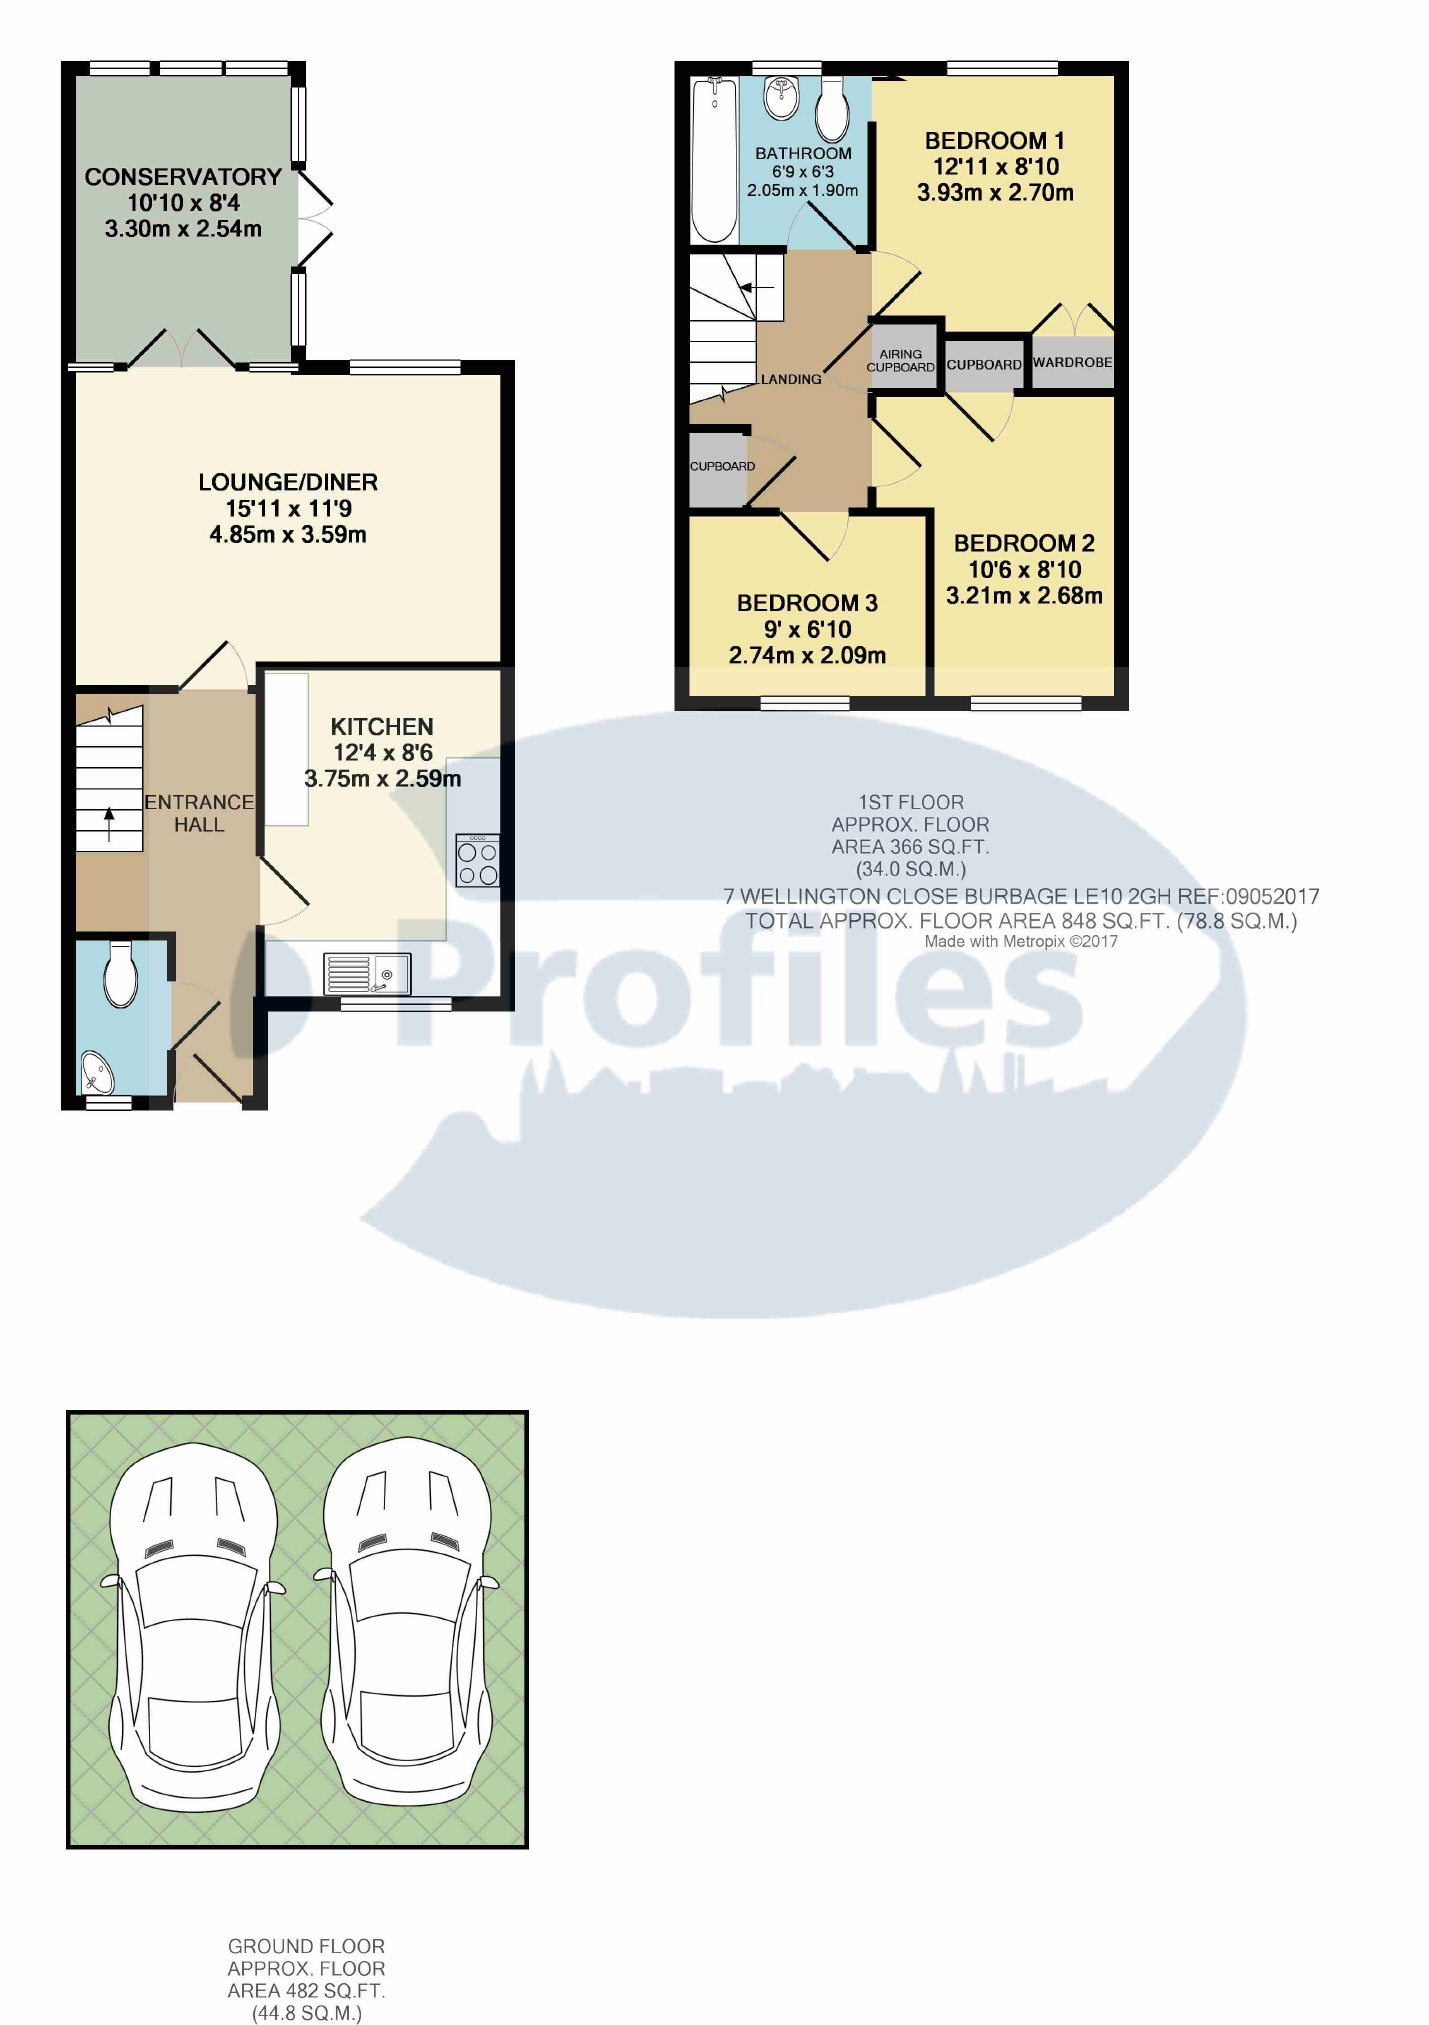 3 bed town house for sale in wellington close burbage hinckley